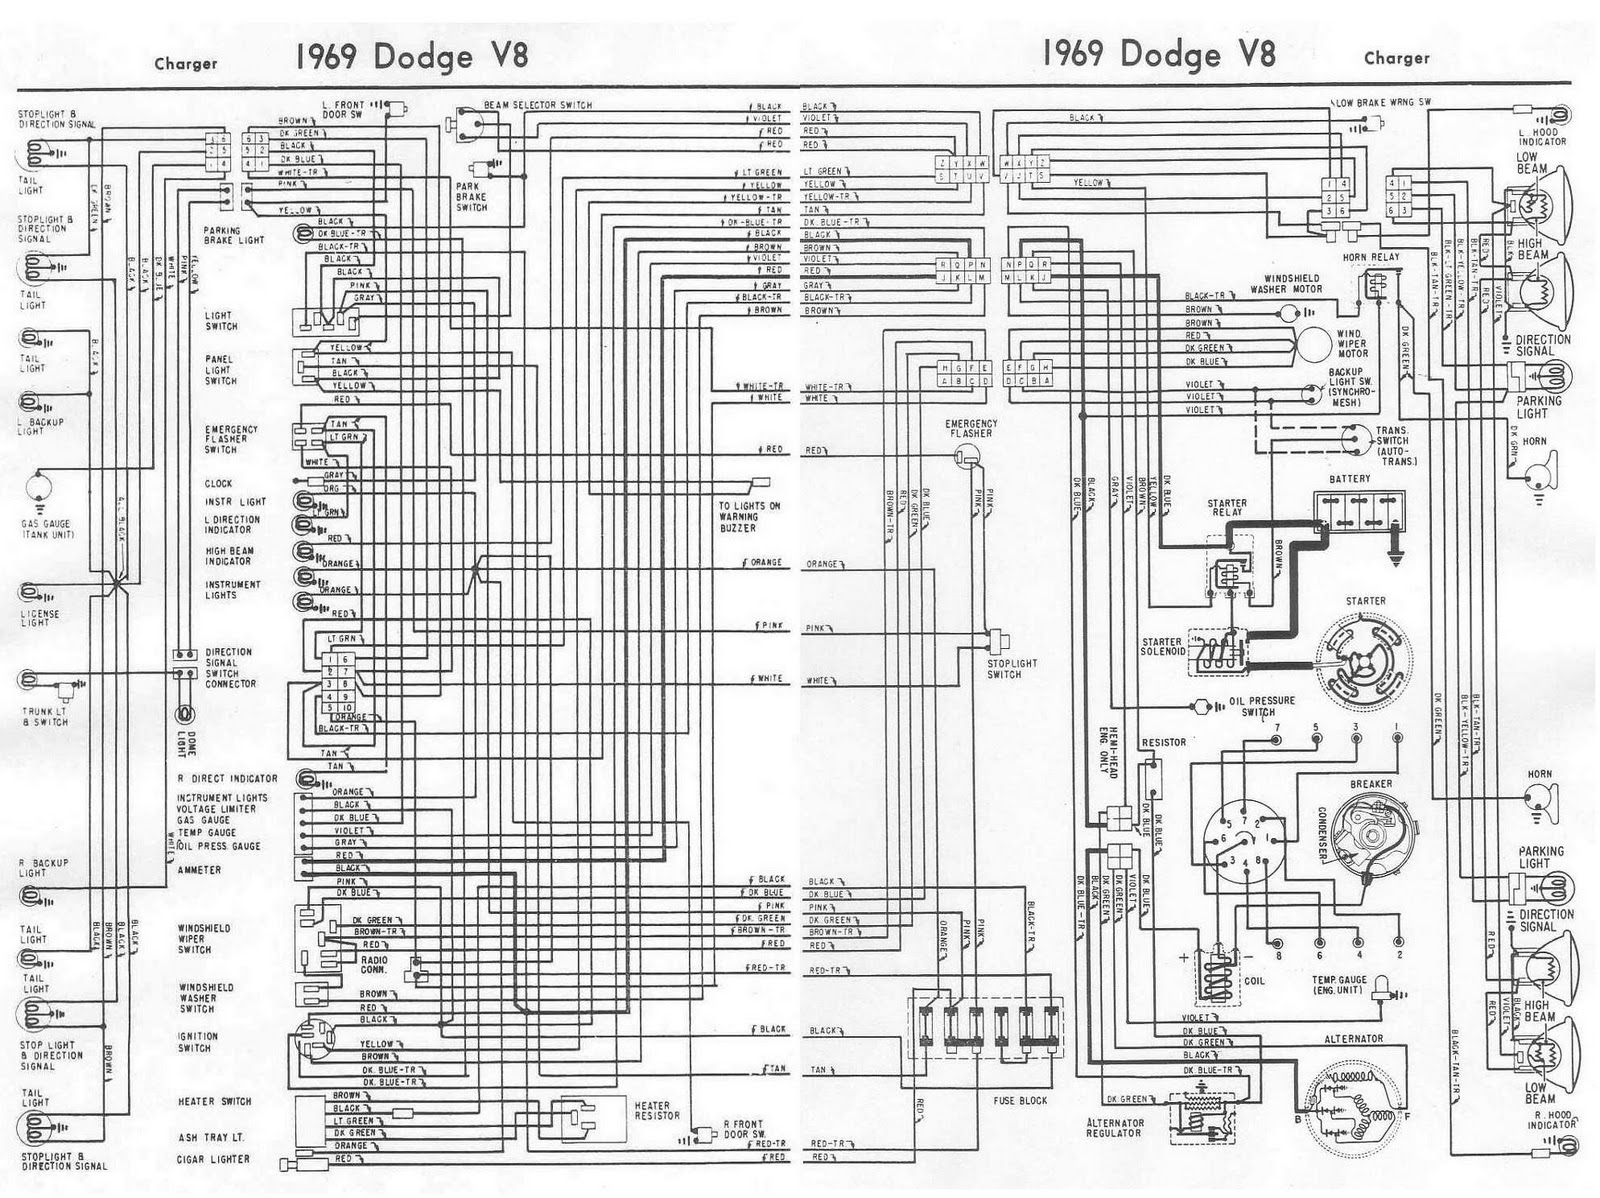 1969 mustang under dash wiring diagram powerwall 2 dodge charger v8 complete electrical